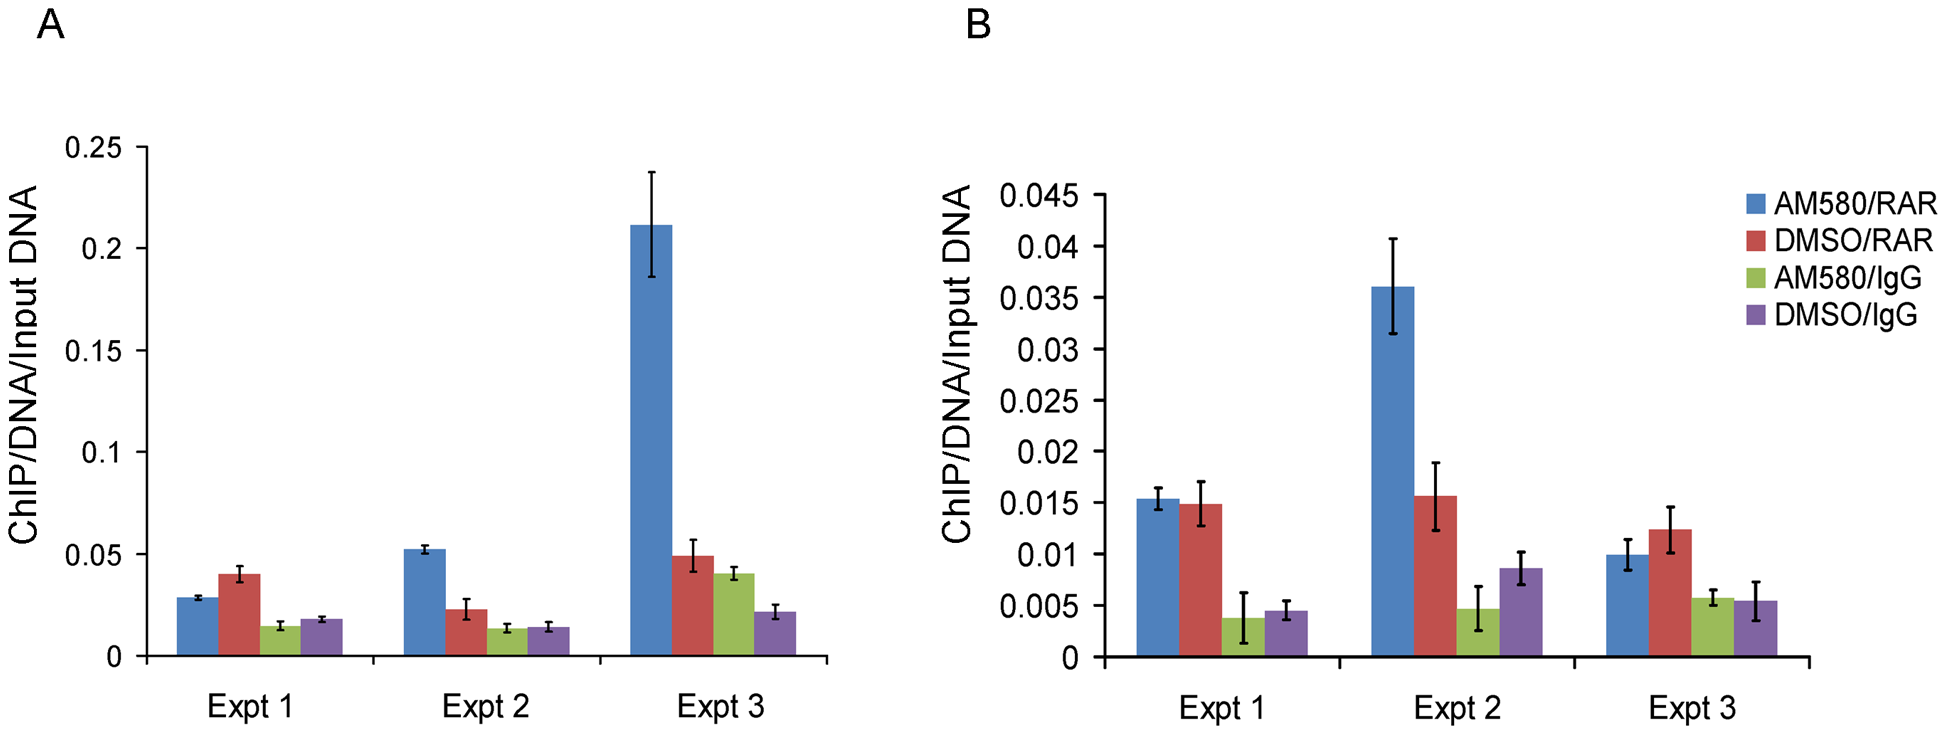 Enrichment of the region nearby rs11868112 in Anti-RAR ChIPed DNA relative to rabbit IgG ChIPed after AM580 and DMSO treatment.